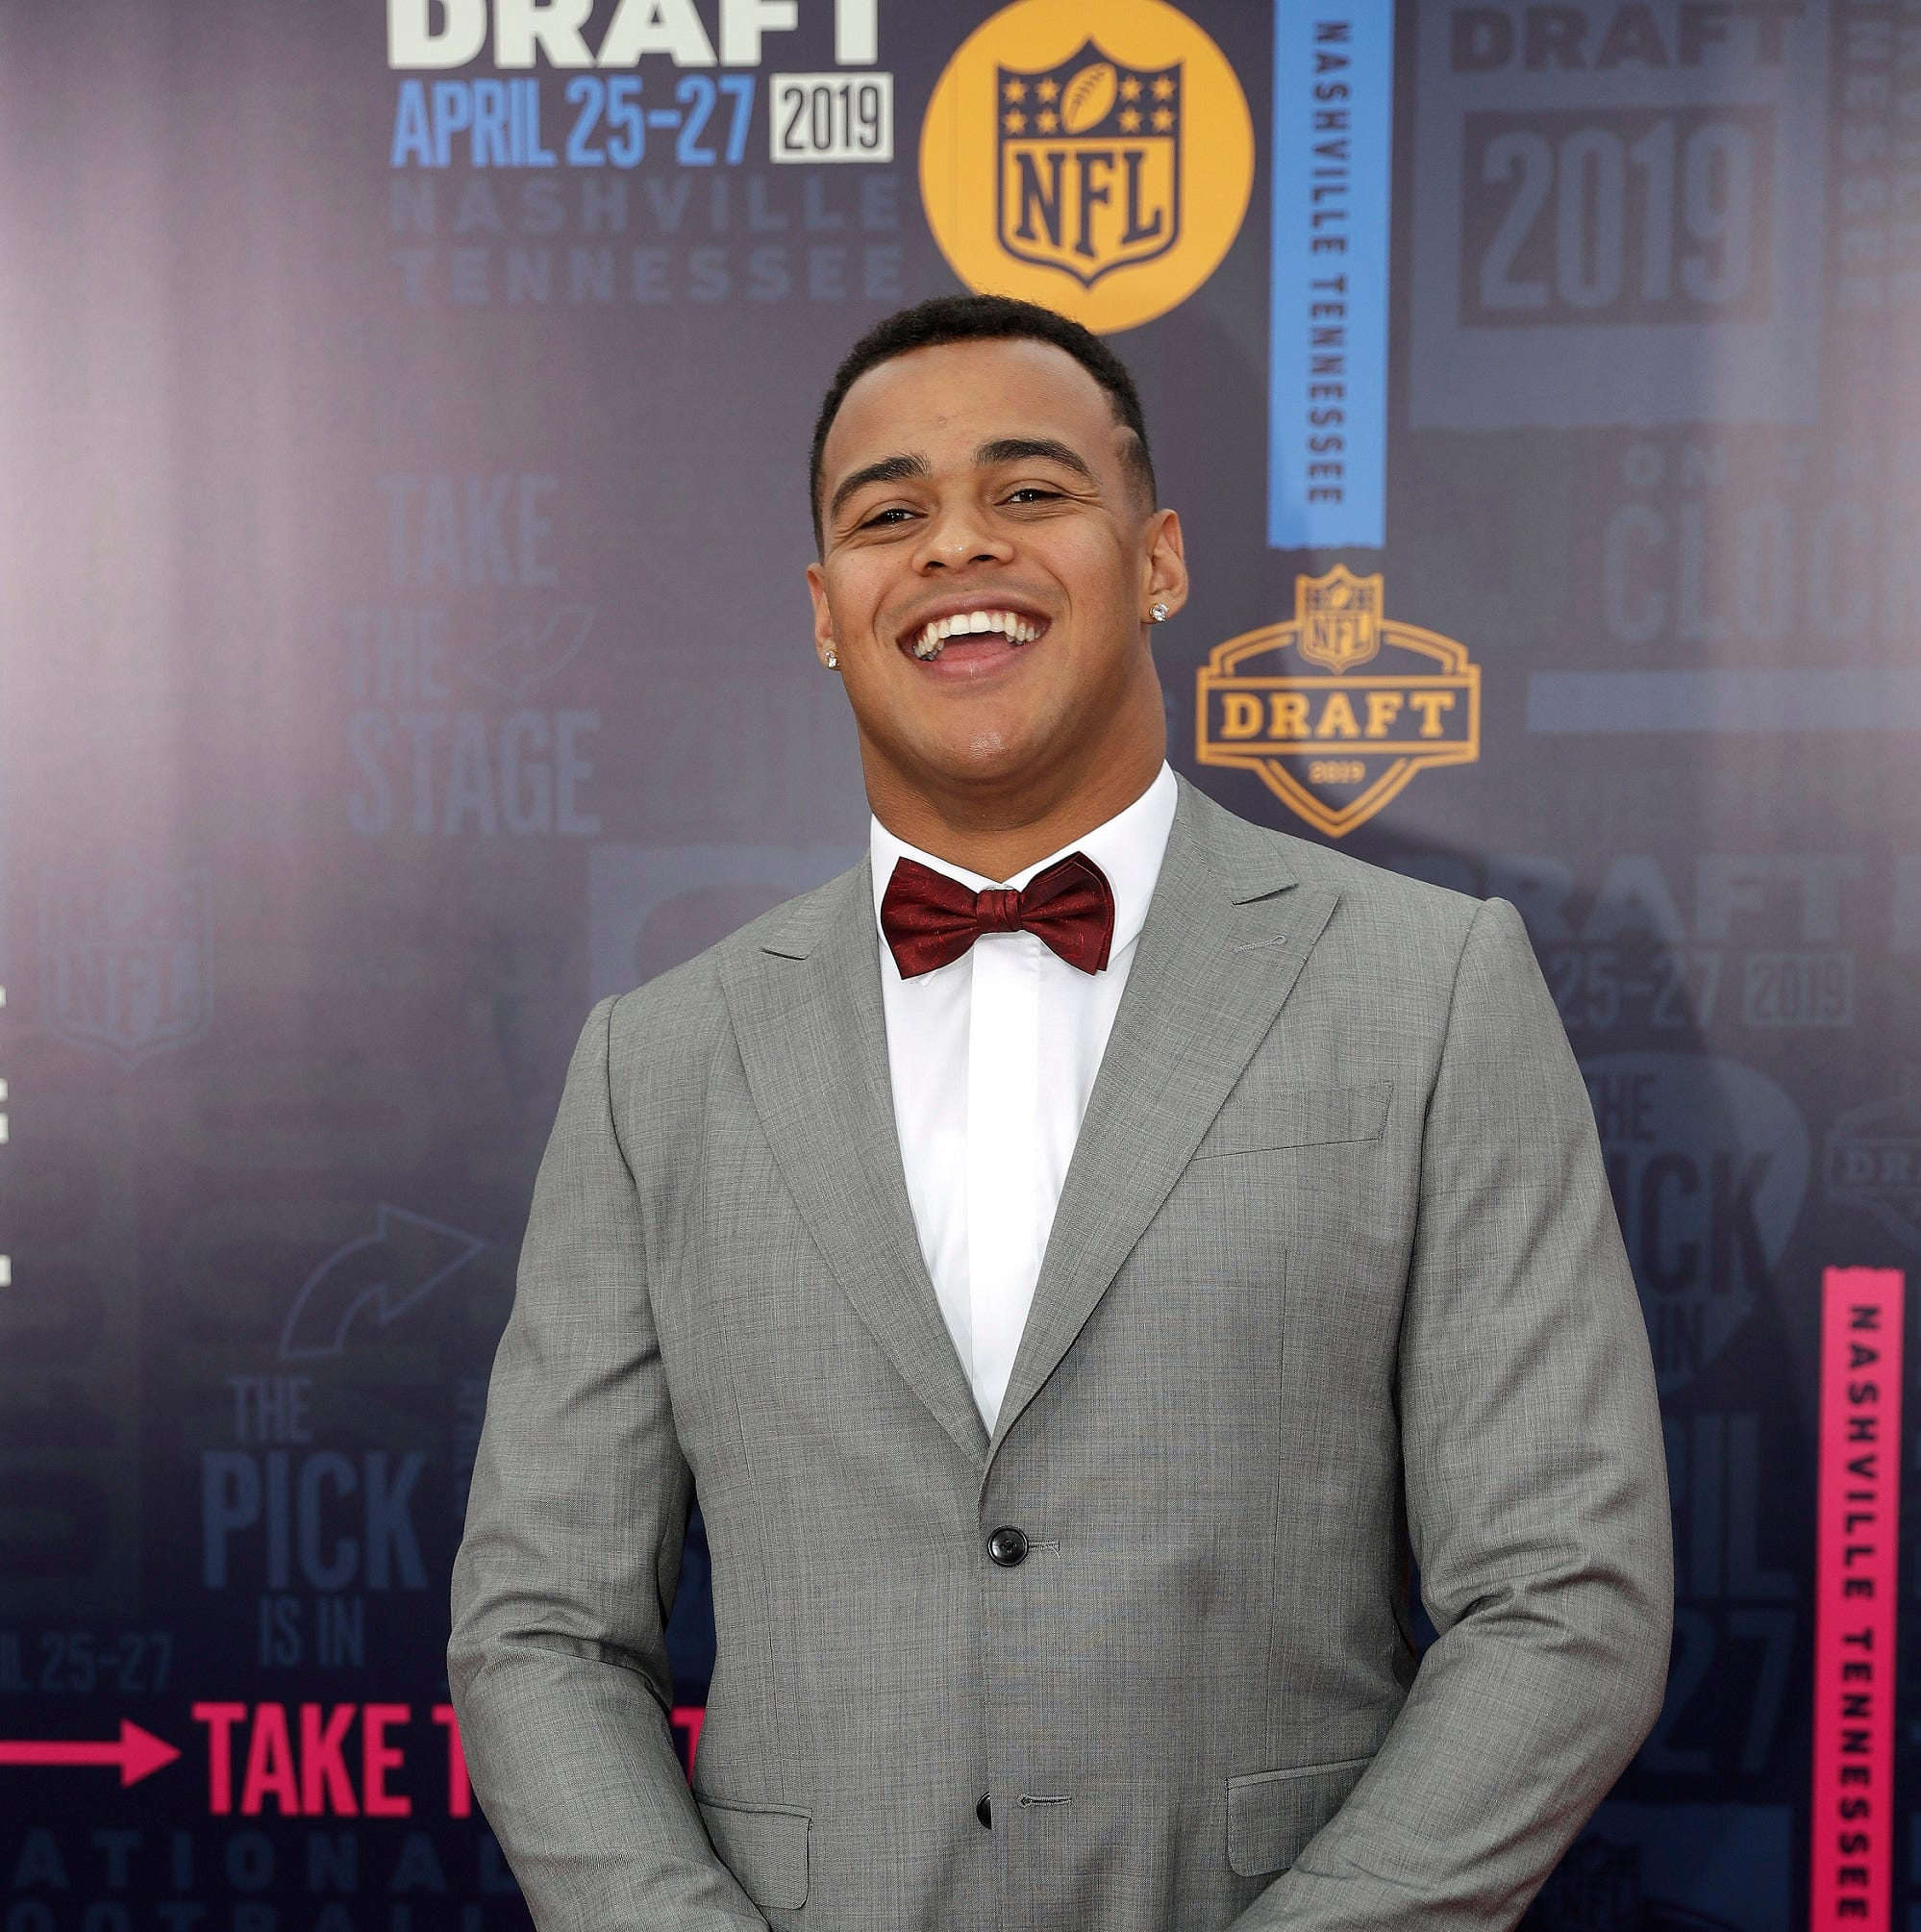 NFL draft: What the Denver Broncos are getting in Hawkeyes tight end Noah Fant